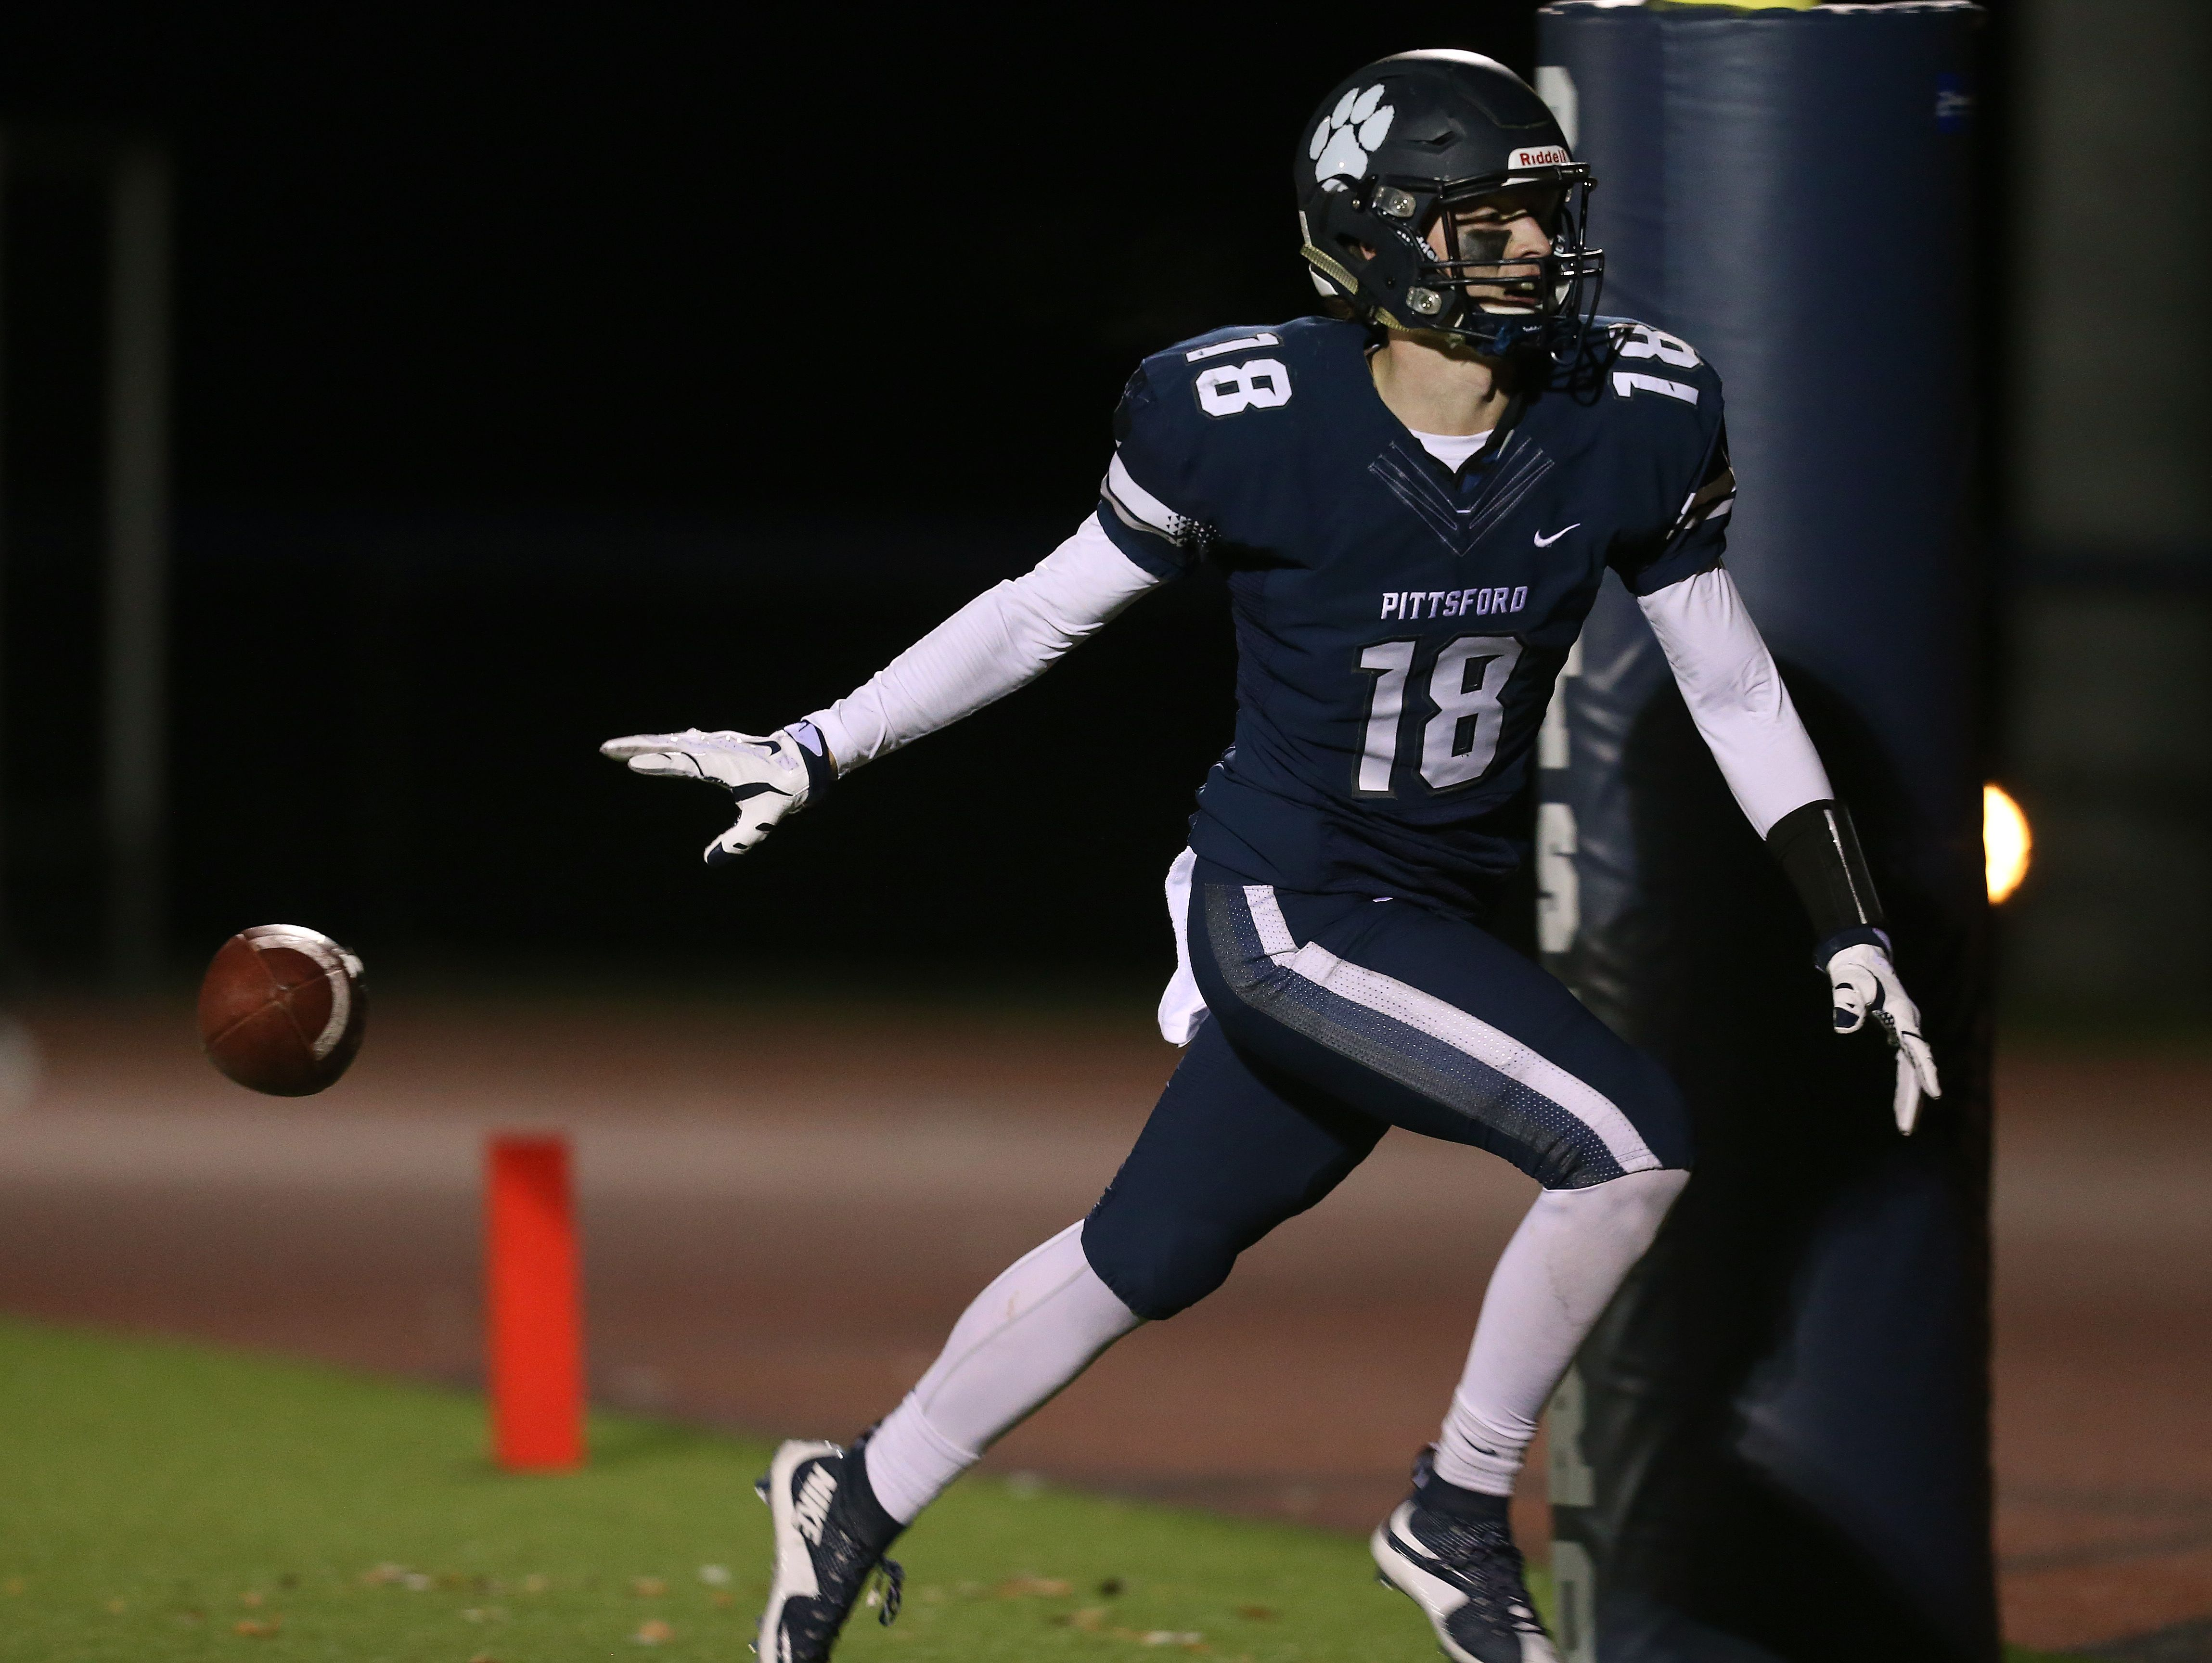 Pittsford senior Colby Barker, at receiver last season for the Panthers during the Section V Class AA Tournament, is the team's quarterback this fall.